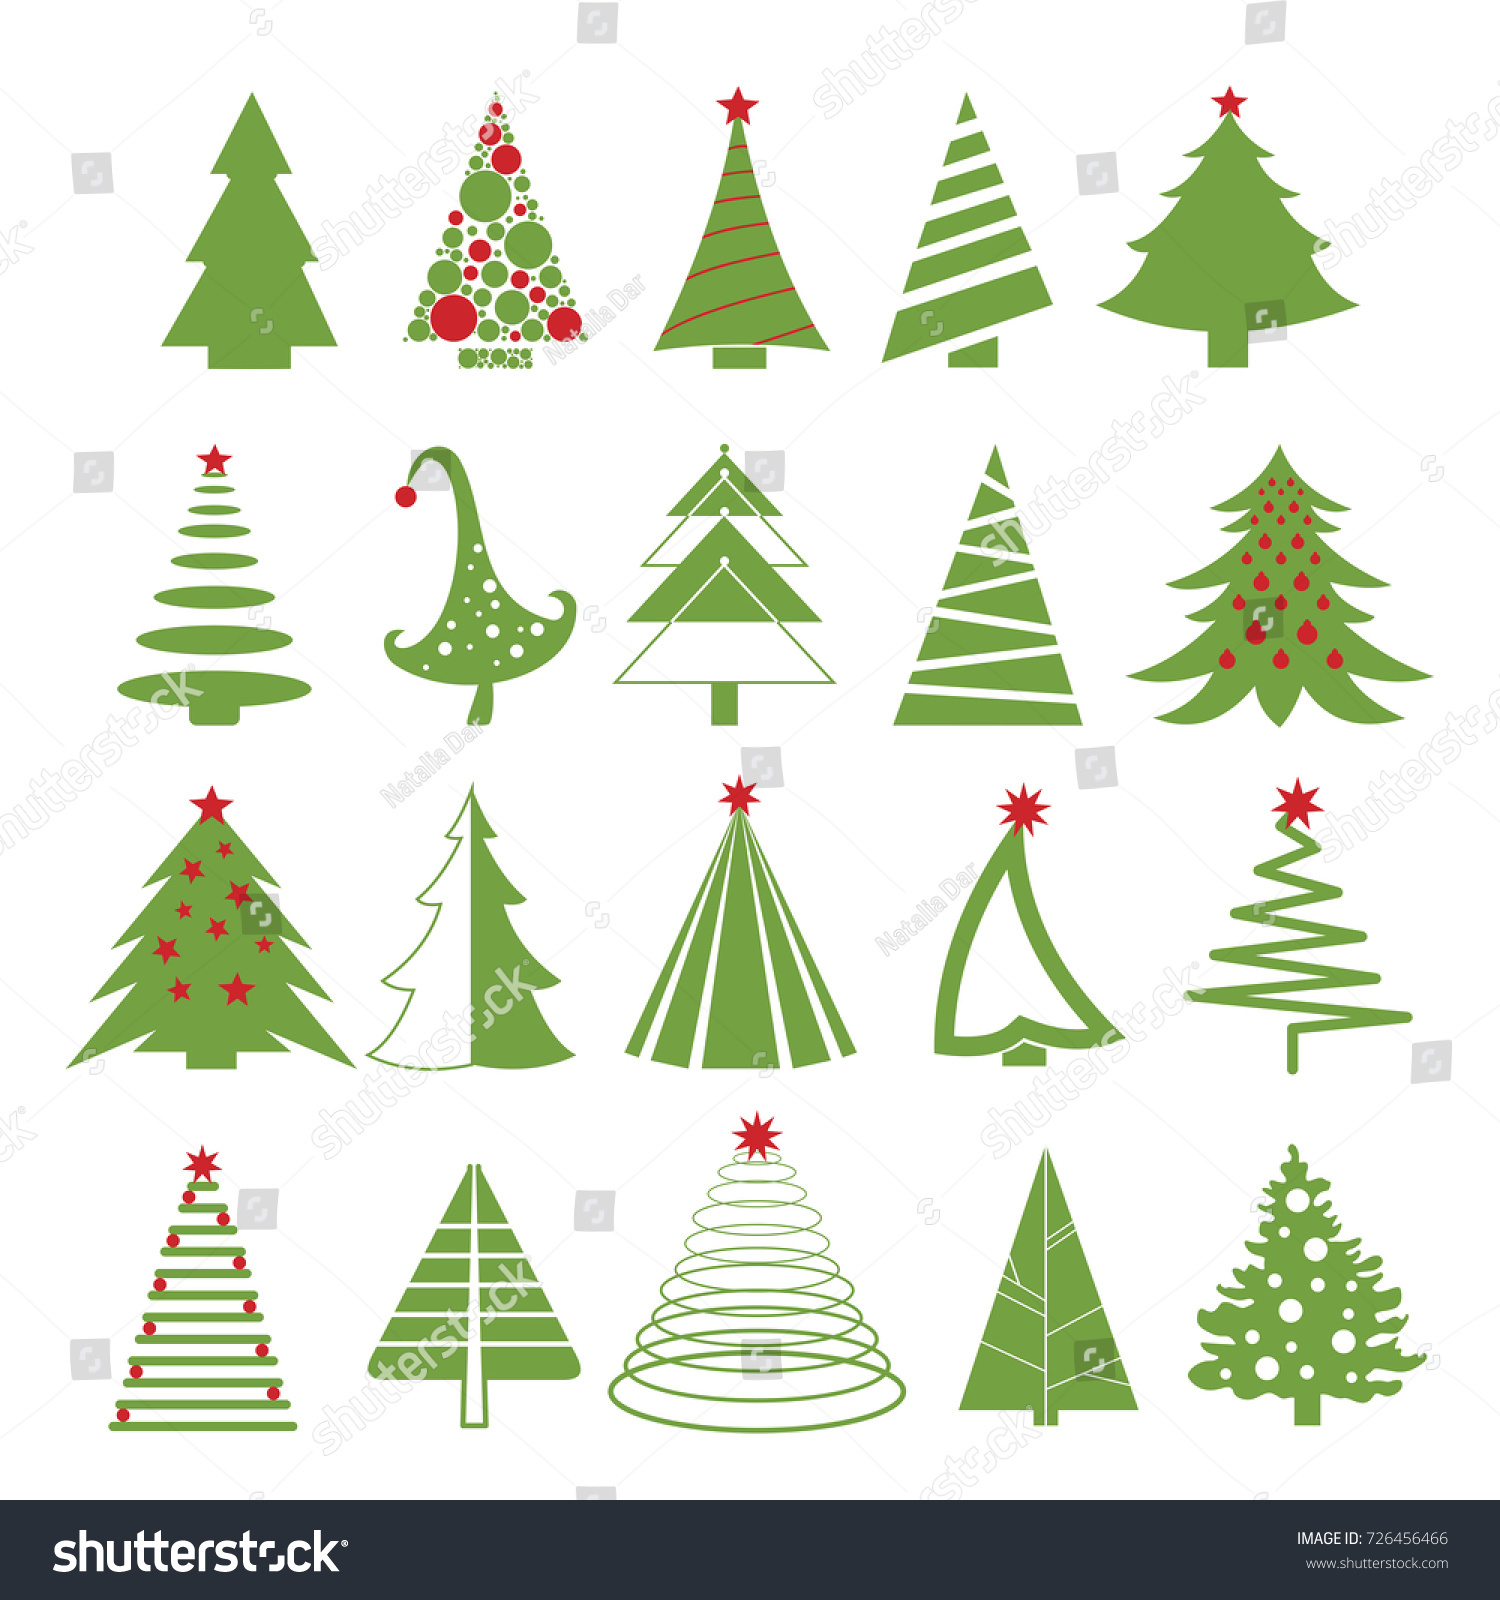 Vector Illustration Set Christmas Trees Red Stock Vector 726456466 ...